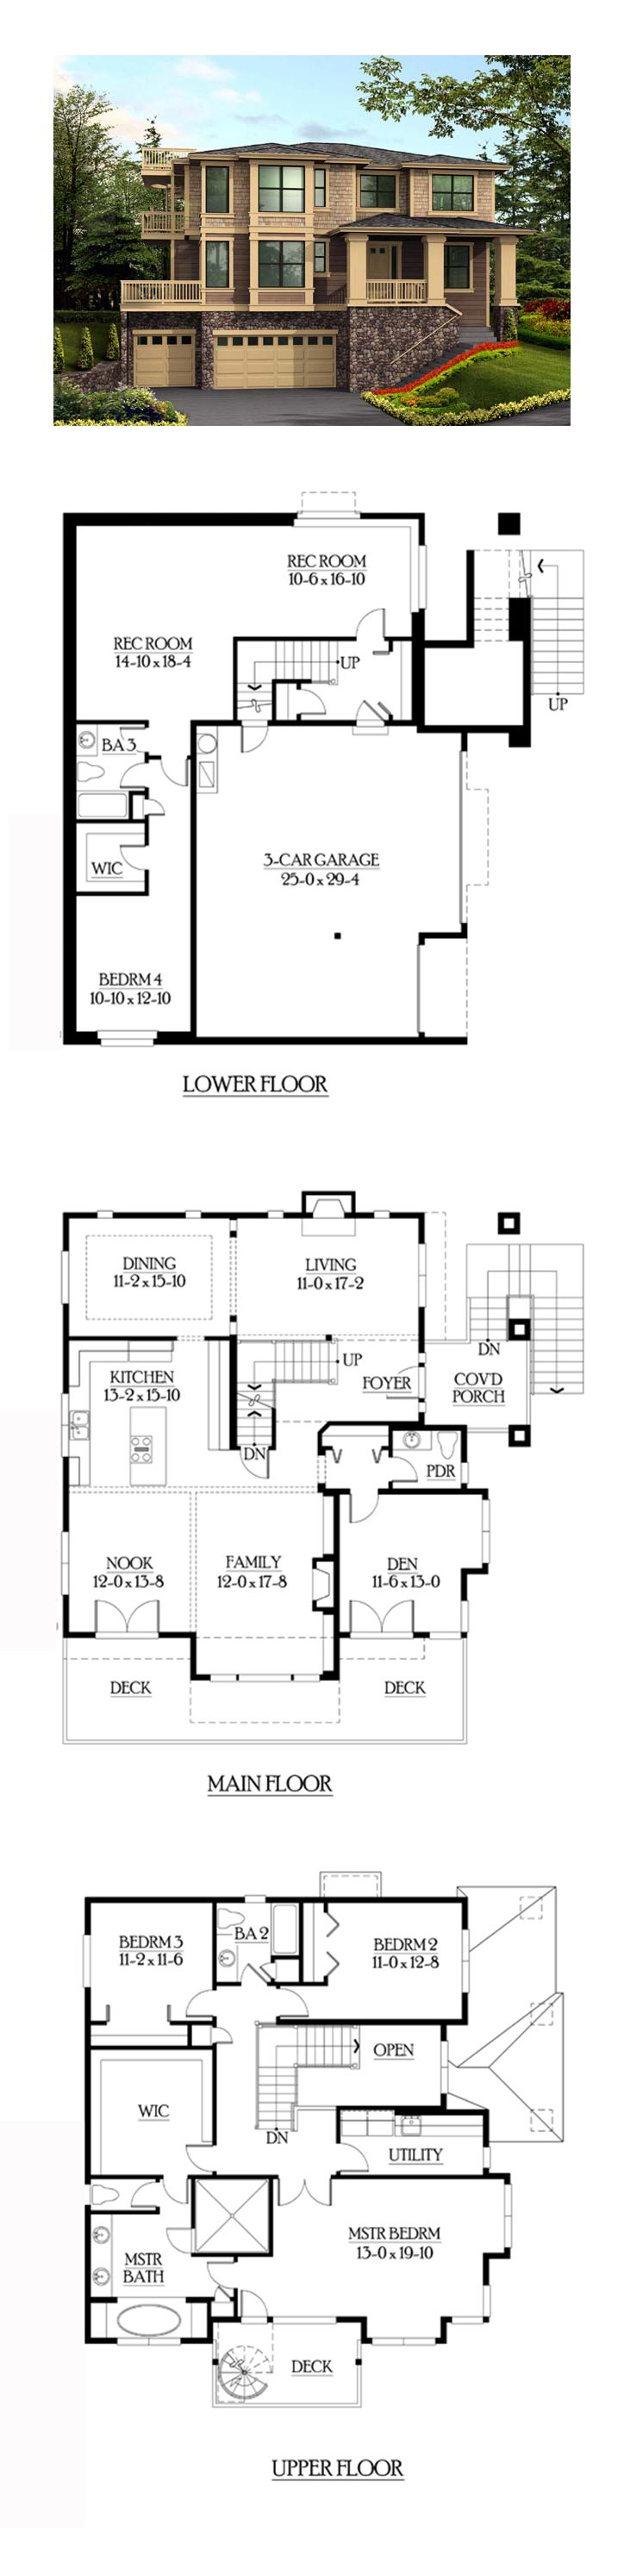 Best 25 basement house plans ideas on pinterest house floor plans house plans and house - Basement house plans ...